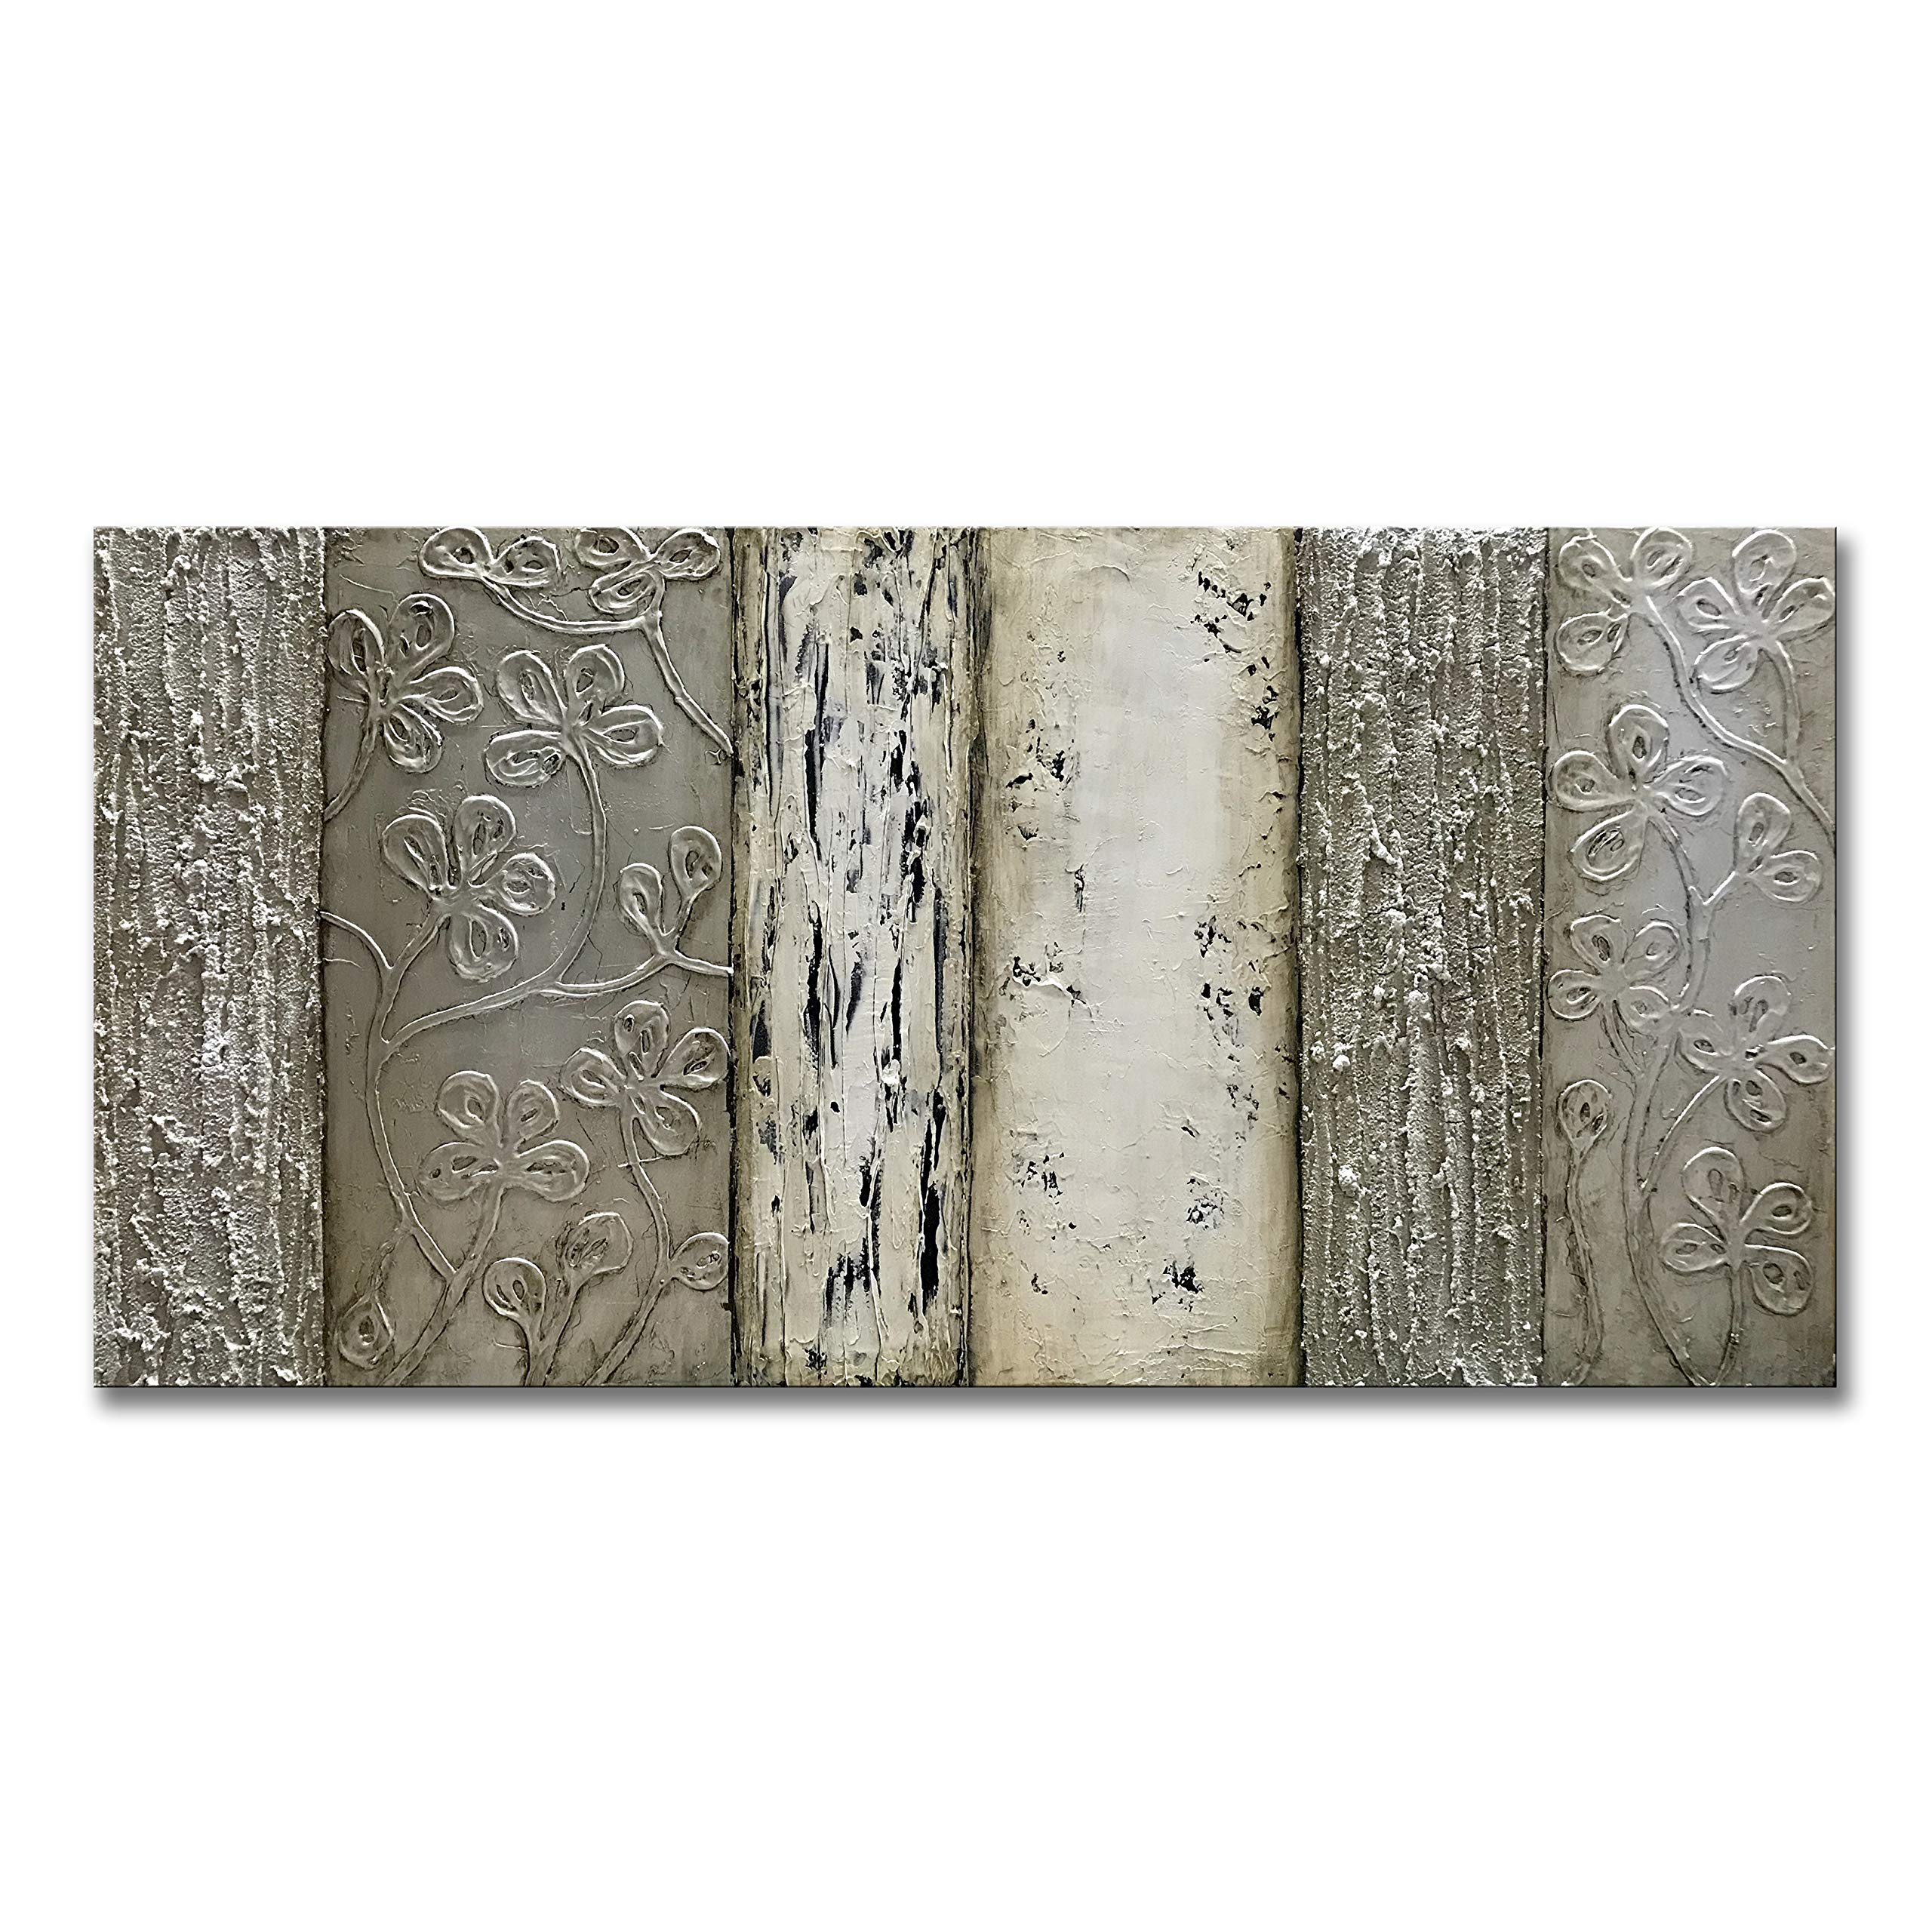 Zoinart 100% Hand-Painted 24x48inch Abstract Oil Paintings on Canvas Wall Art Grey Plum Blossom Unique Thick Texture Rough Surface Painting Imitation Old Handicrafts Modern Wall Decor Home Decorations